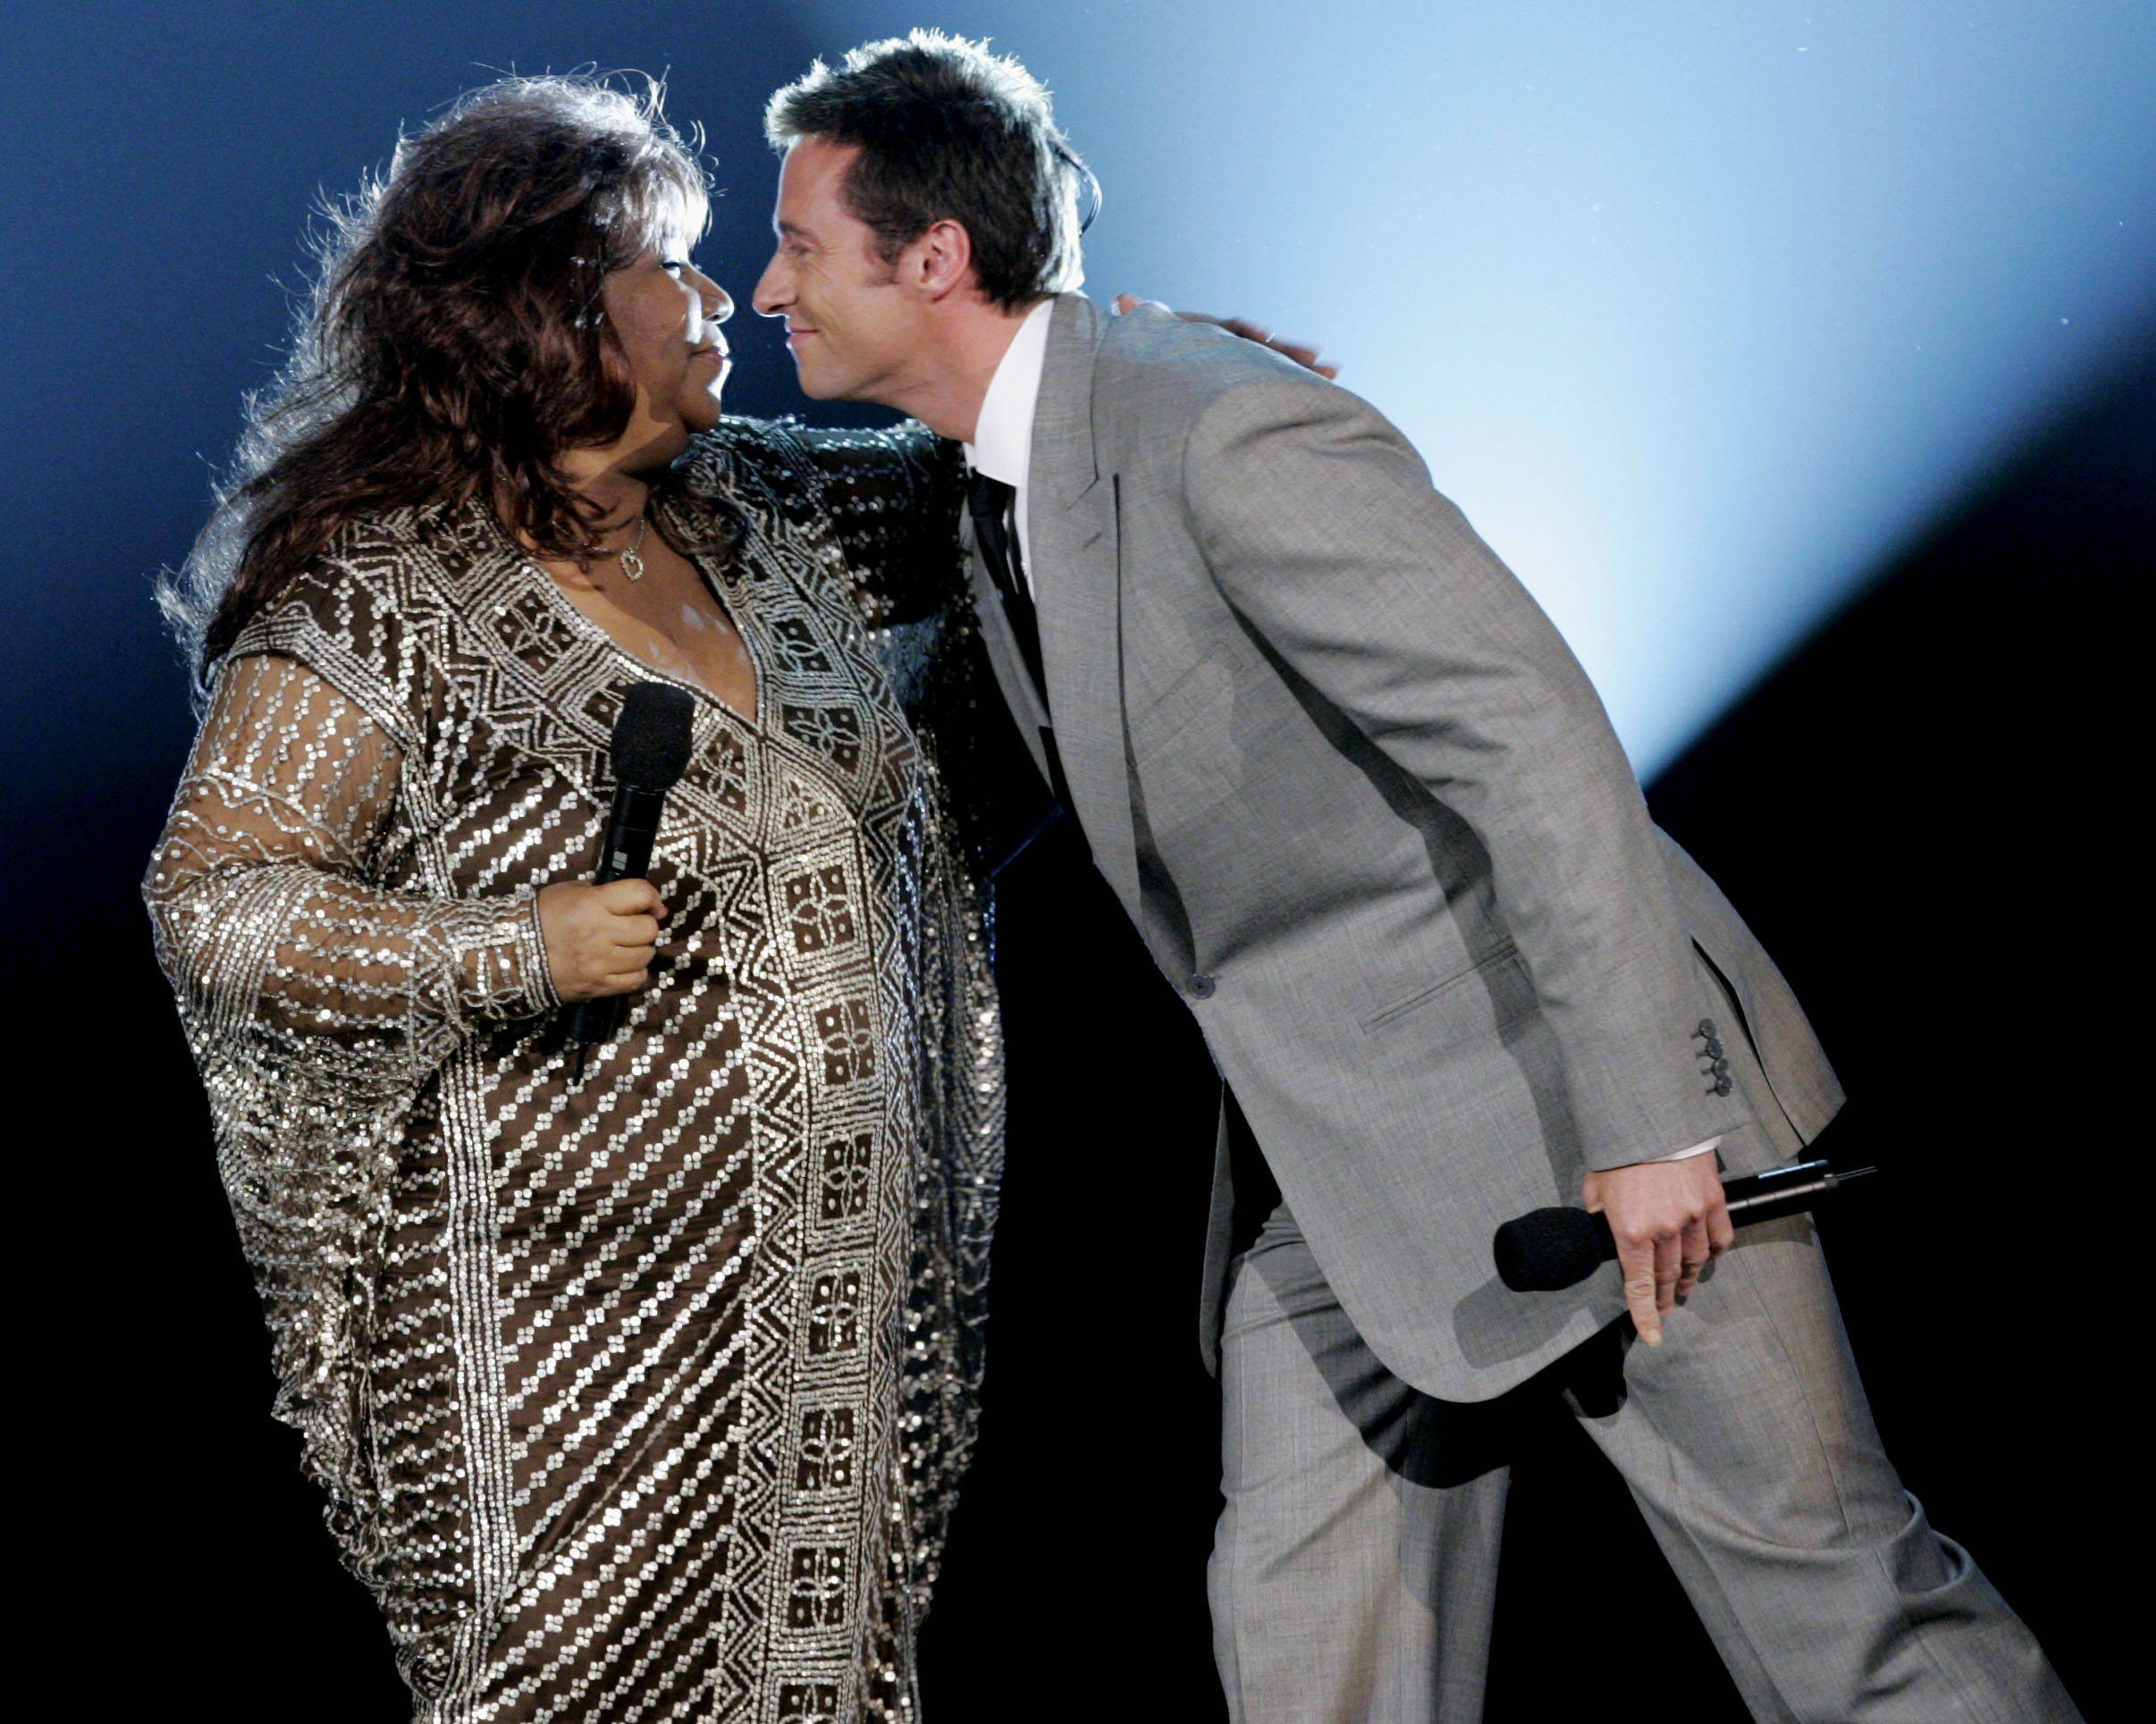 Host Hugh Jackman, right, leans to kiss Aretha Franklin after they sang together at the 2005 Tony Awards at Radio City Music Hall in New York on Sunday, June 5, 2005.